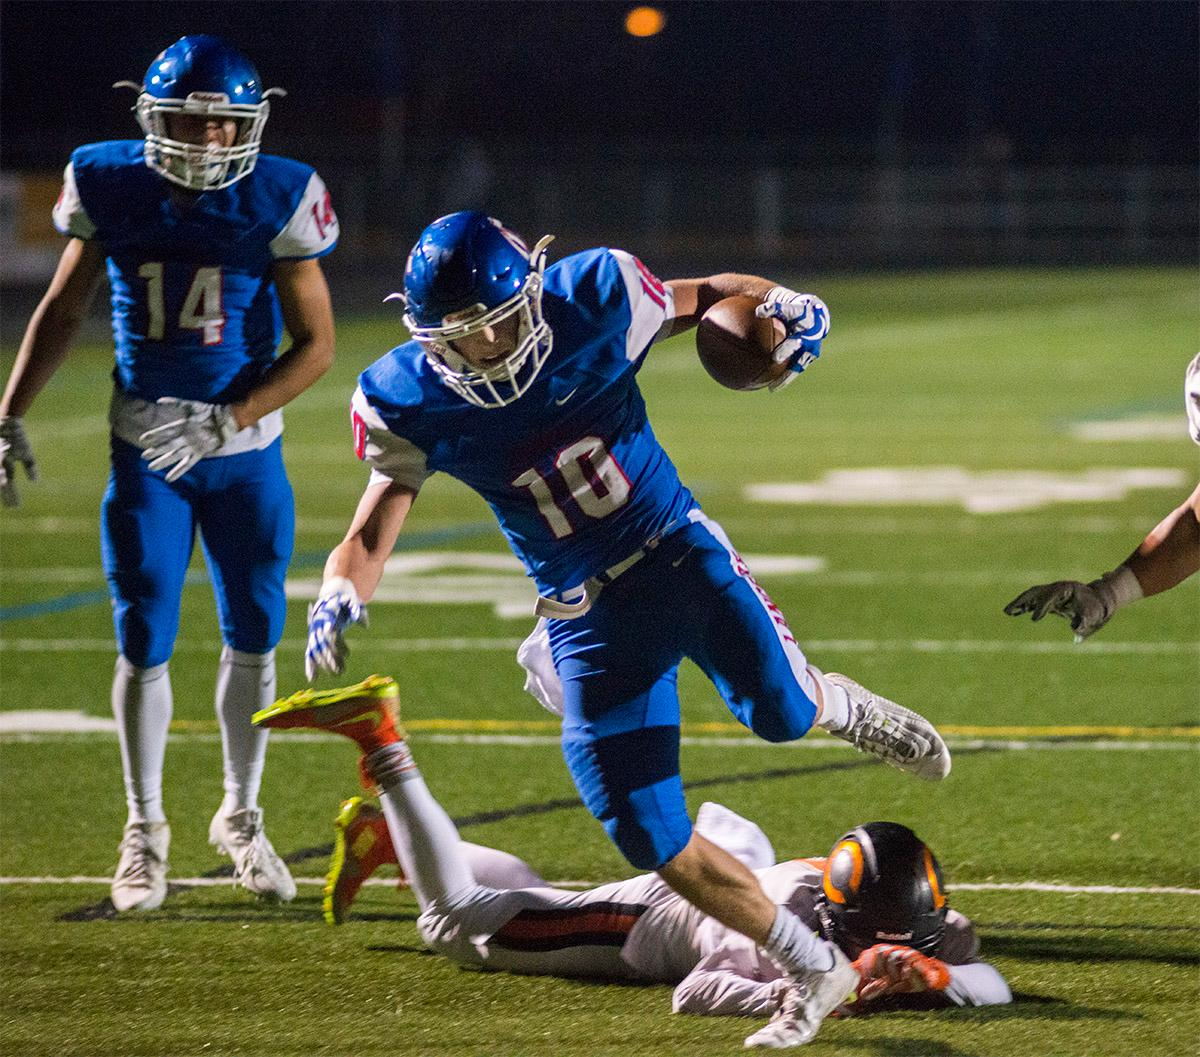 Churchill Lancers Tyson Bennion (#10) jumps over Crater Comets defense to gain more yards. Churchill defeated Crater 63-21 on Friday at their homecoming game. Churchill remains undefeated with a conference record of 9-0. Photo by Rhianna Gelhart, Oregon News Lab